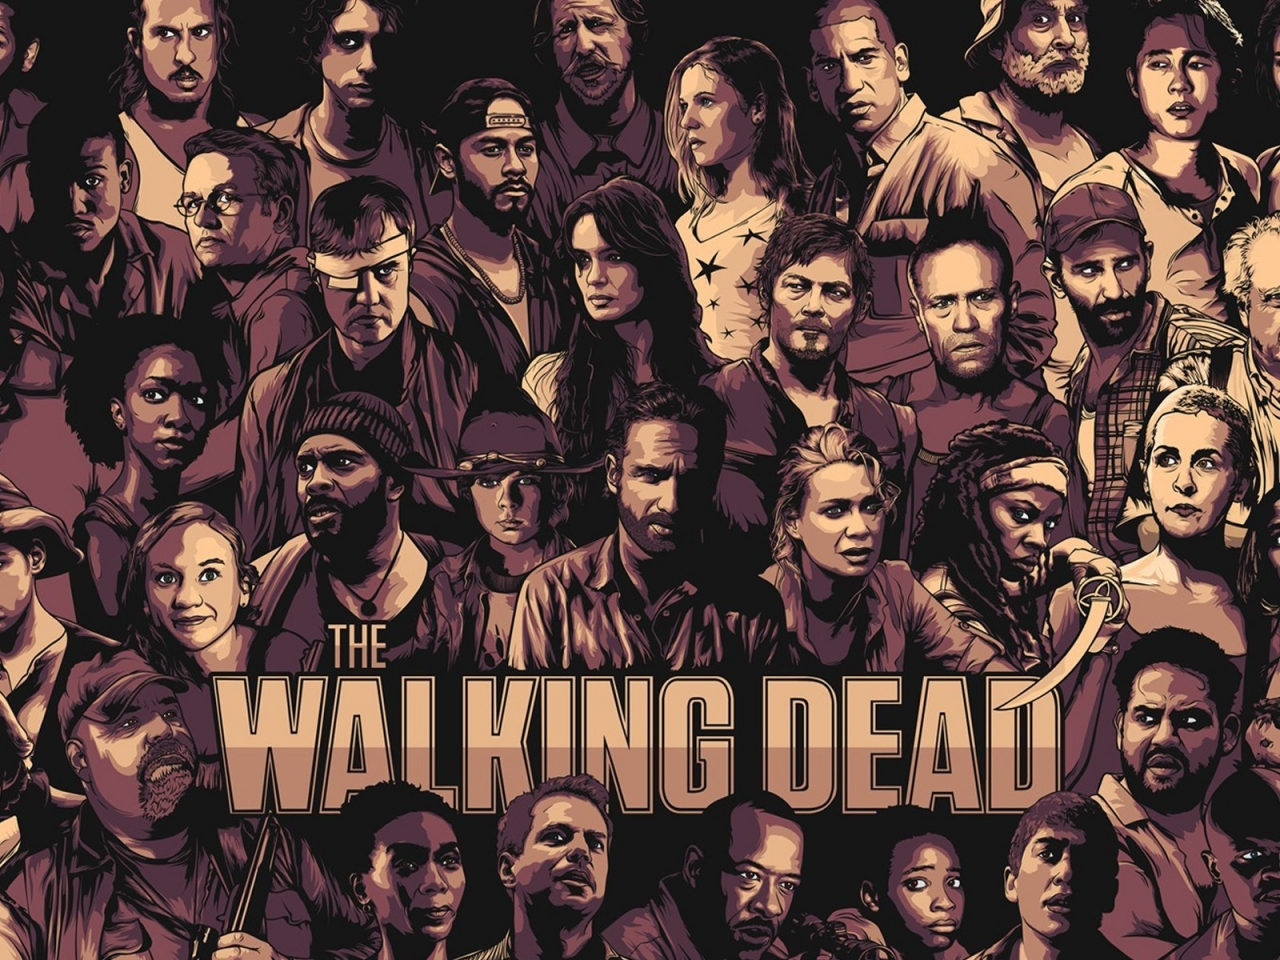 The Walking Dead Cool Poster for 1280 x 960 resolution